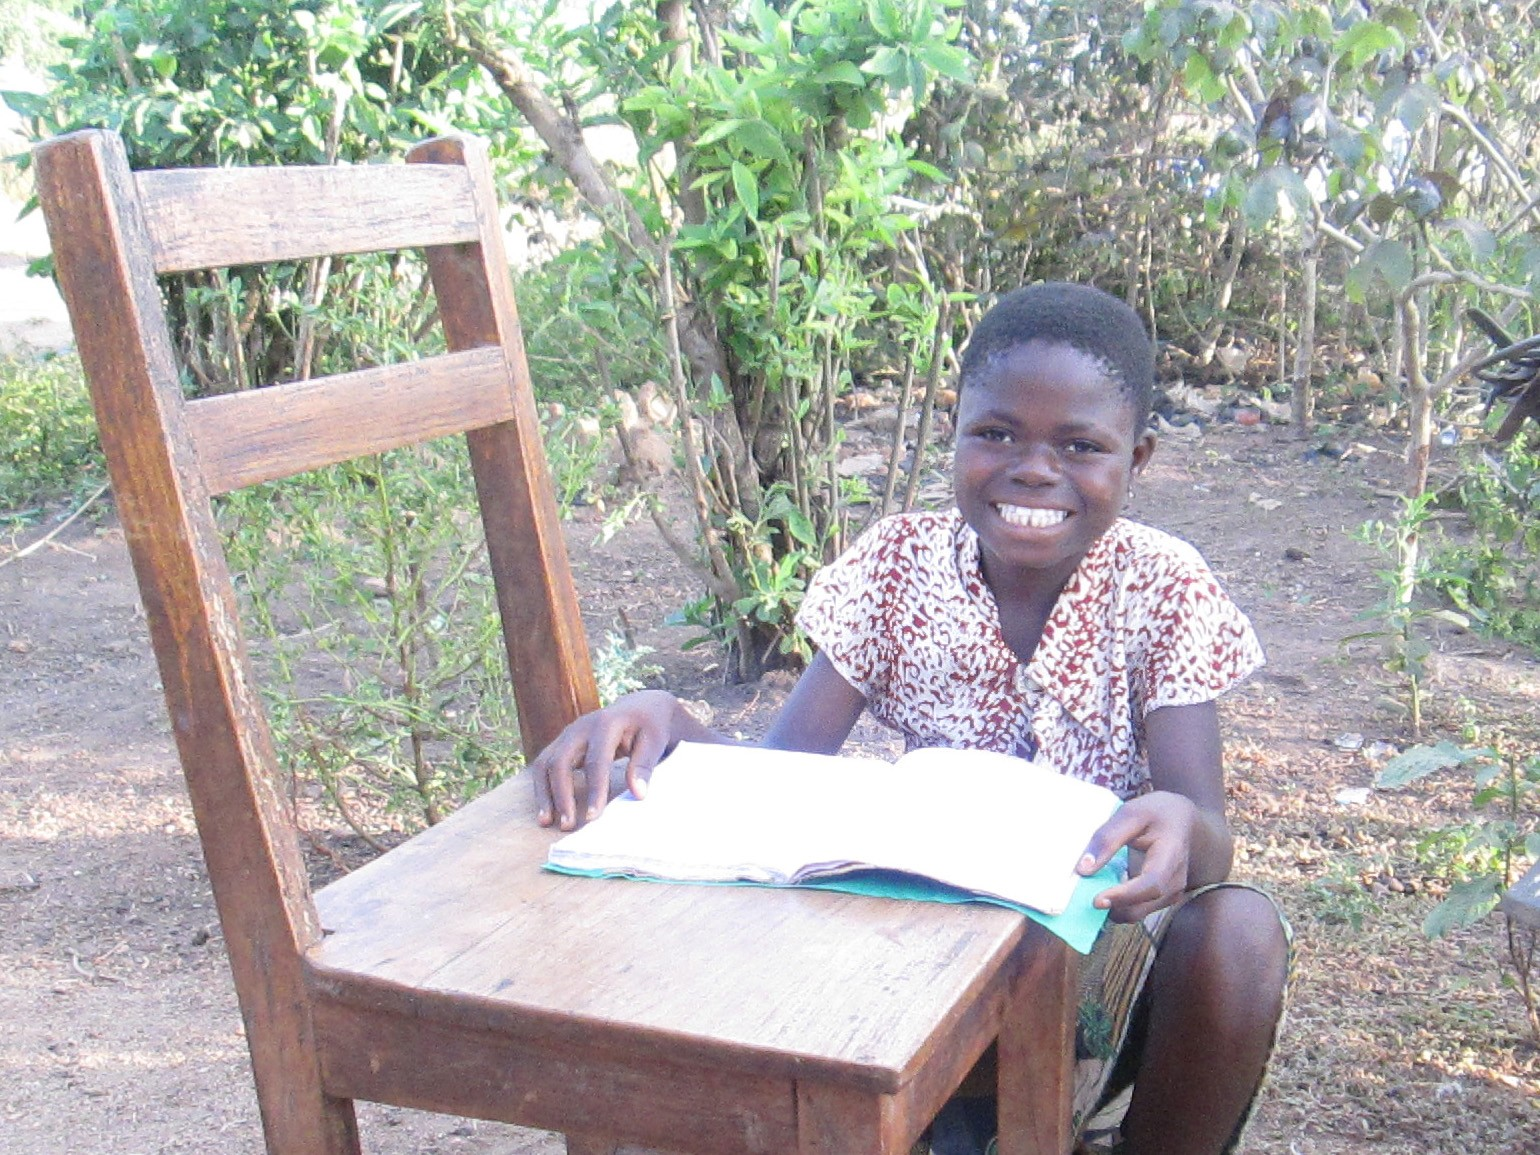 Child trafficking: Cherita doing homework and studying her lessons